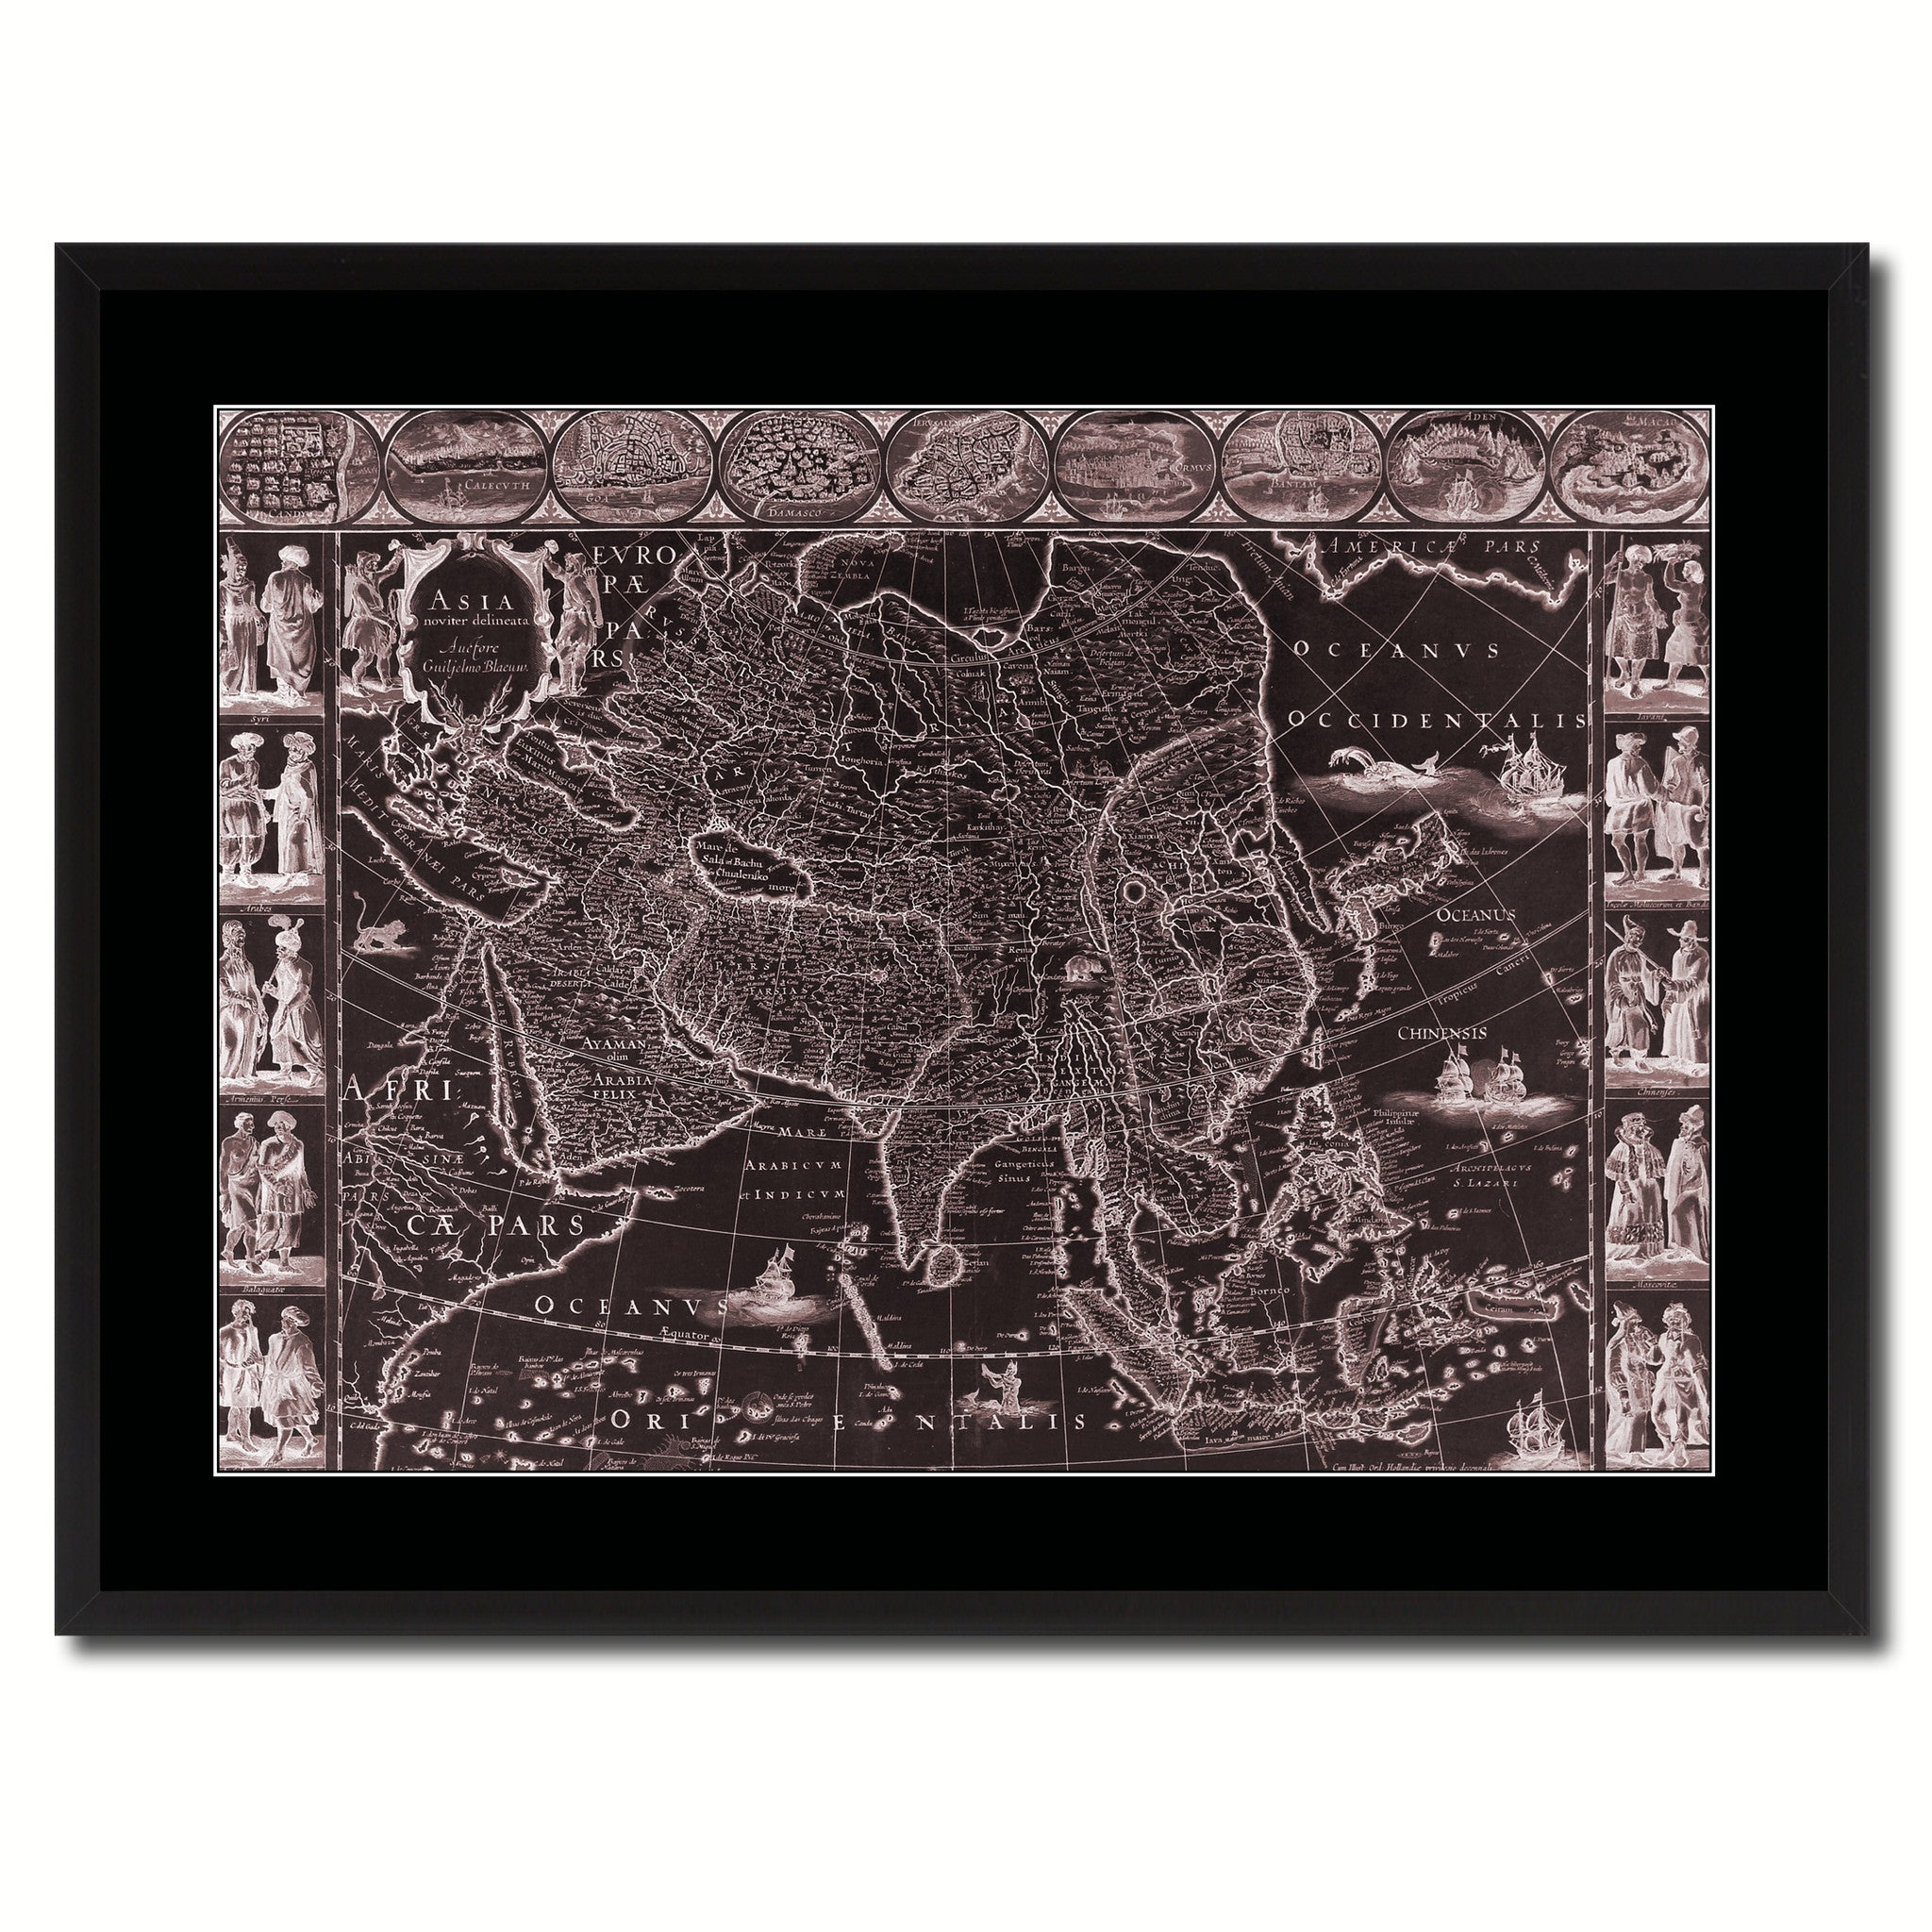 Asia Vintage Vivid Sepia Map Canvas Print, Picture Frames Home Decor Wall Art Decoration Gifts